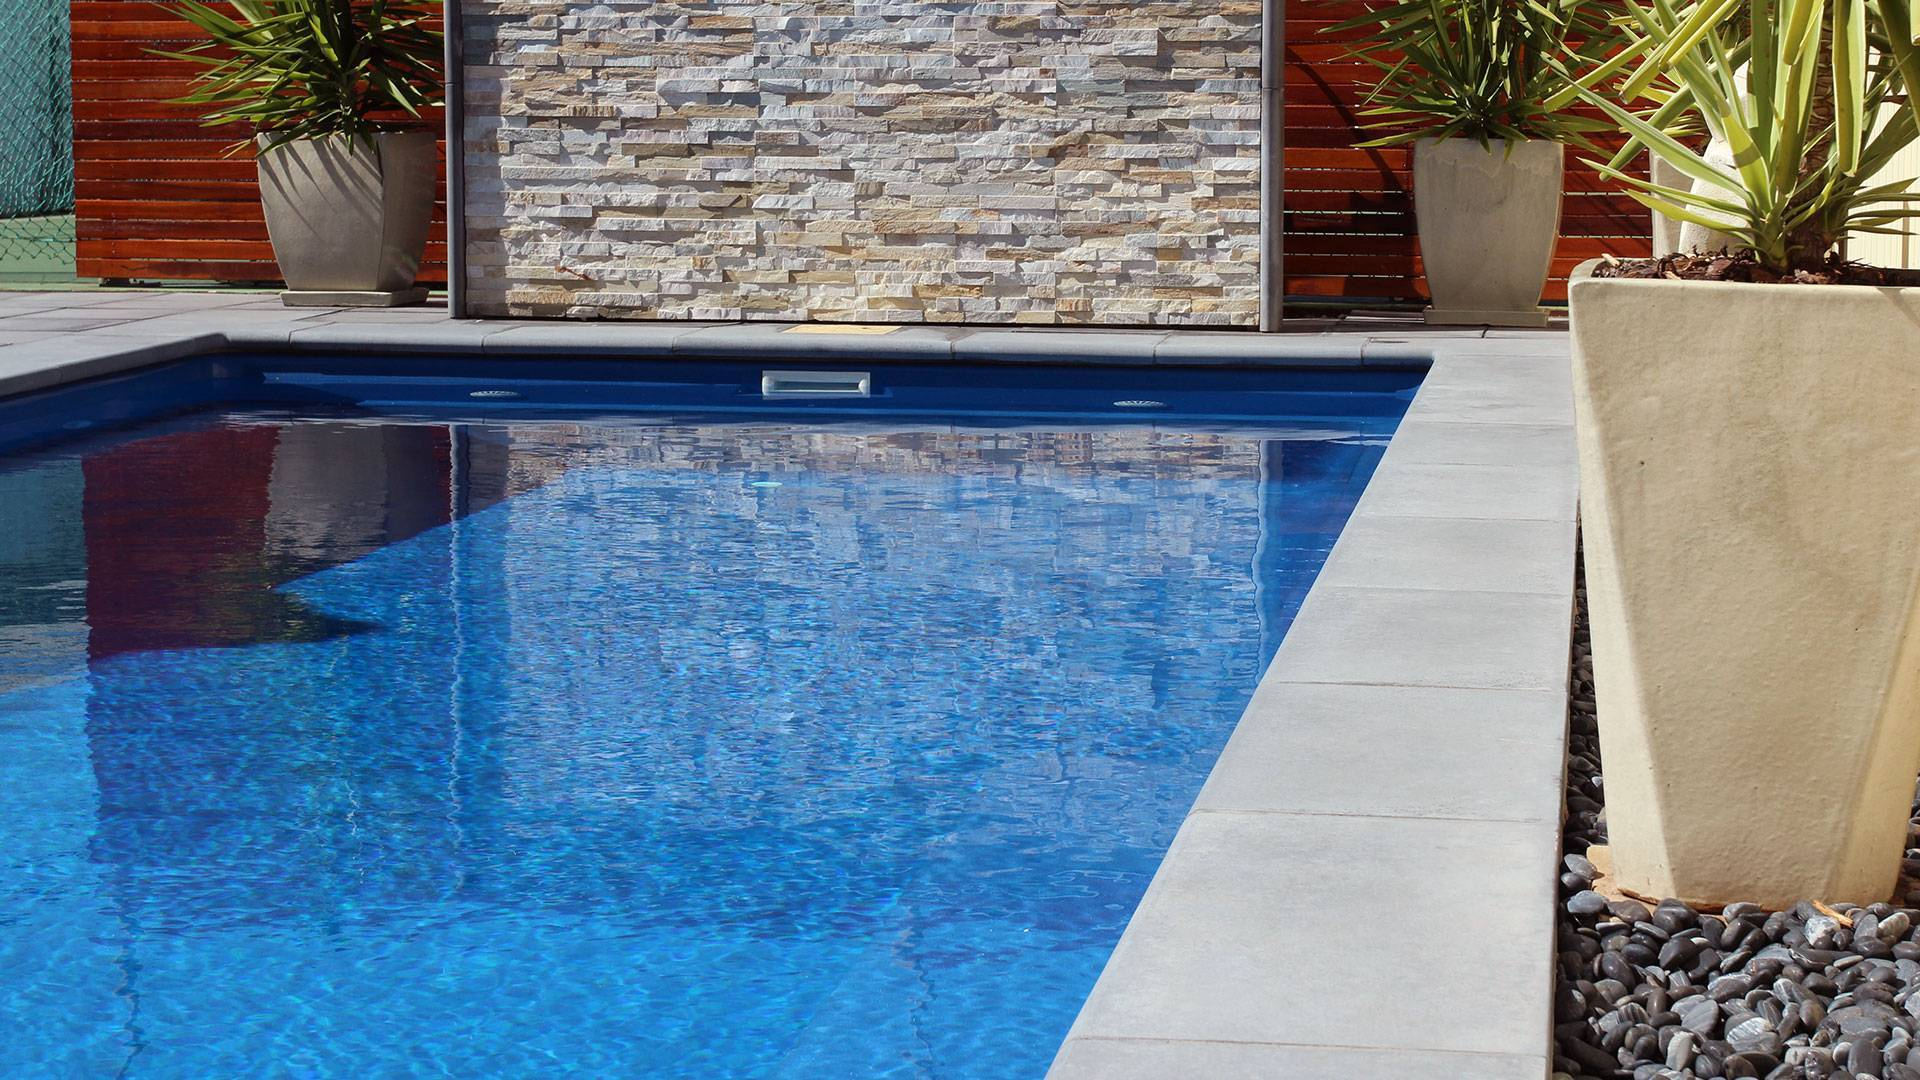 Fibreglass Pool - Home Swimming Pools For Summer